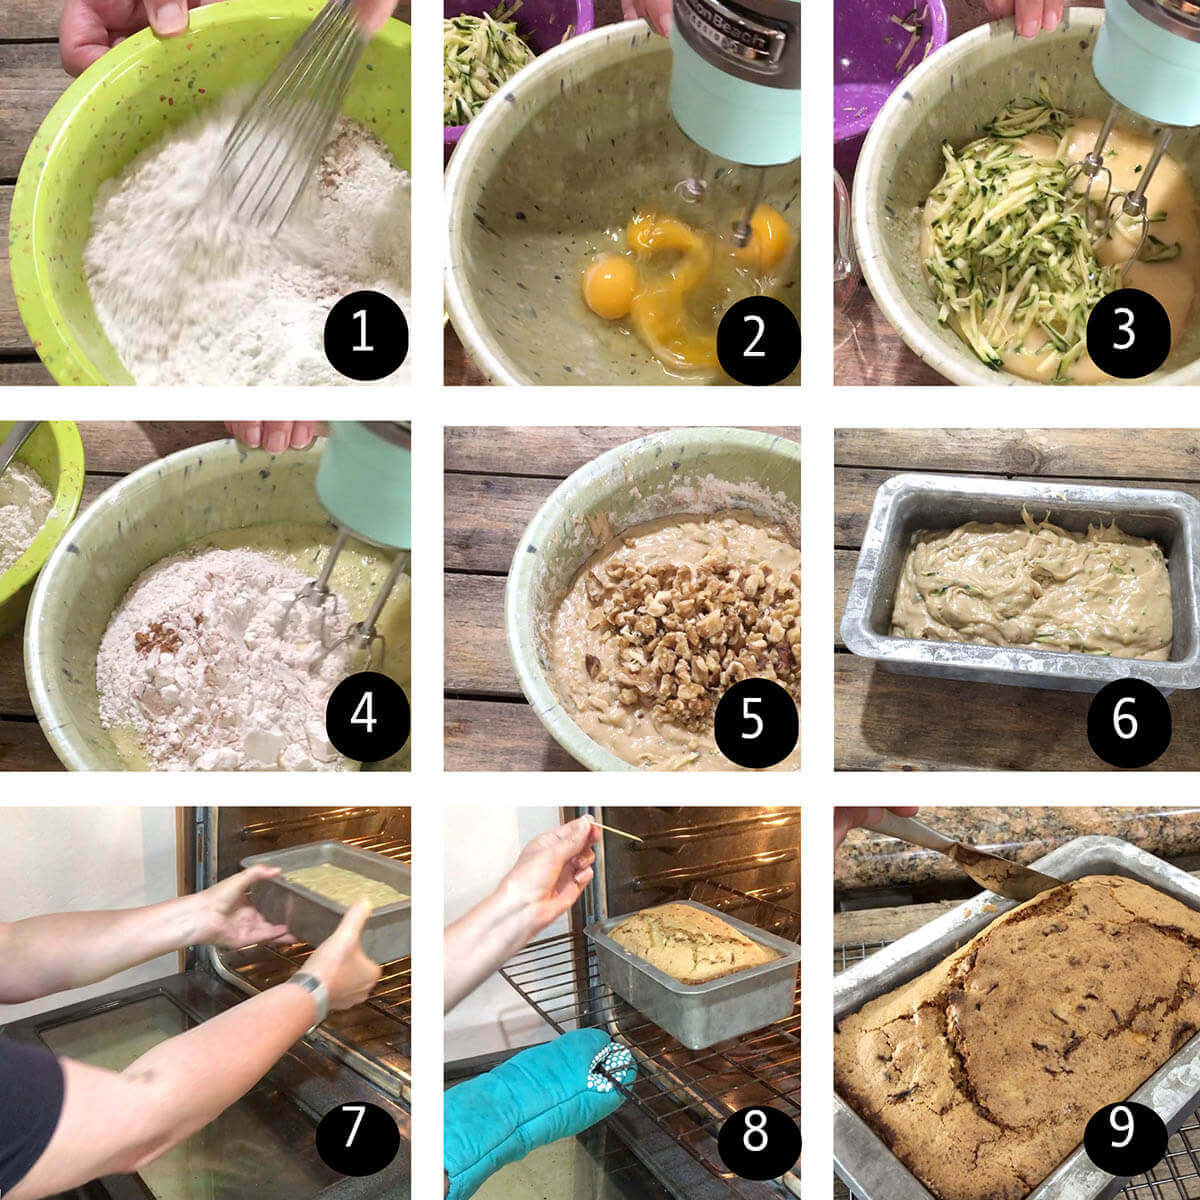 Step by step directions to make zucchini bread.